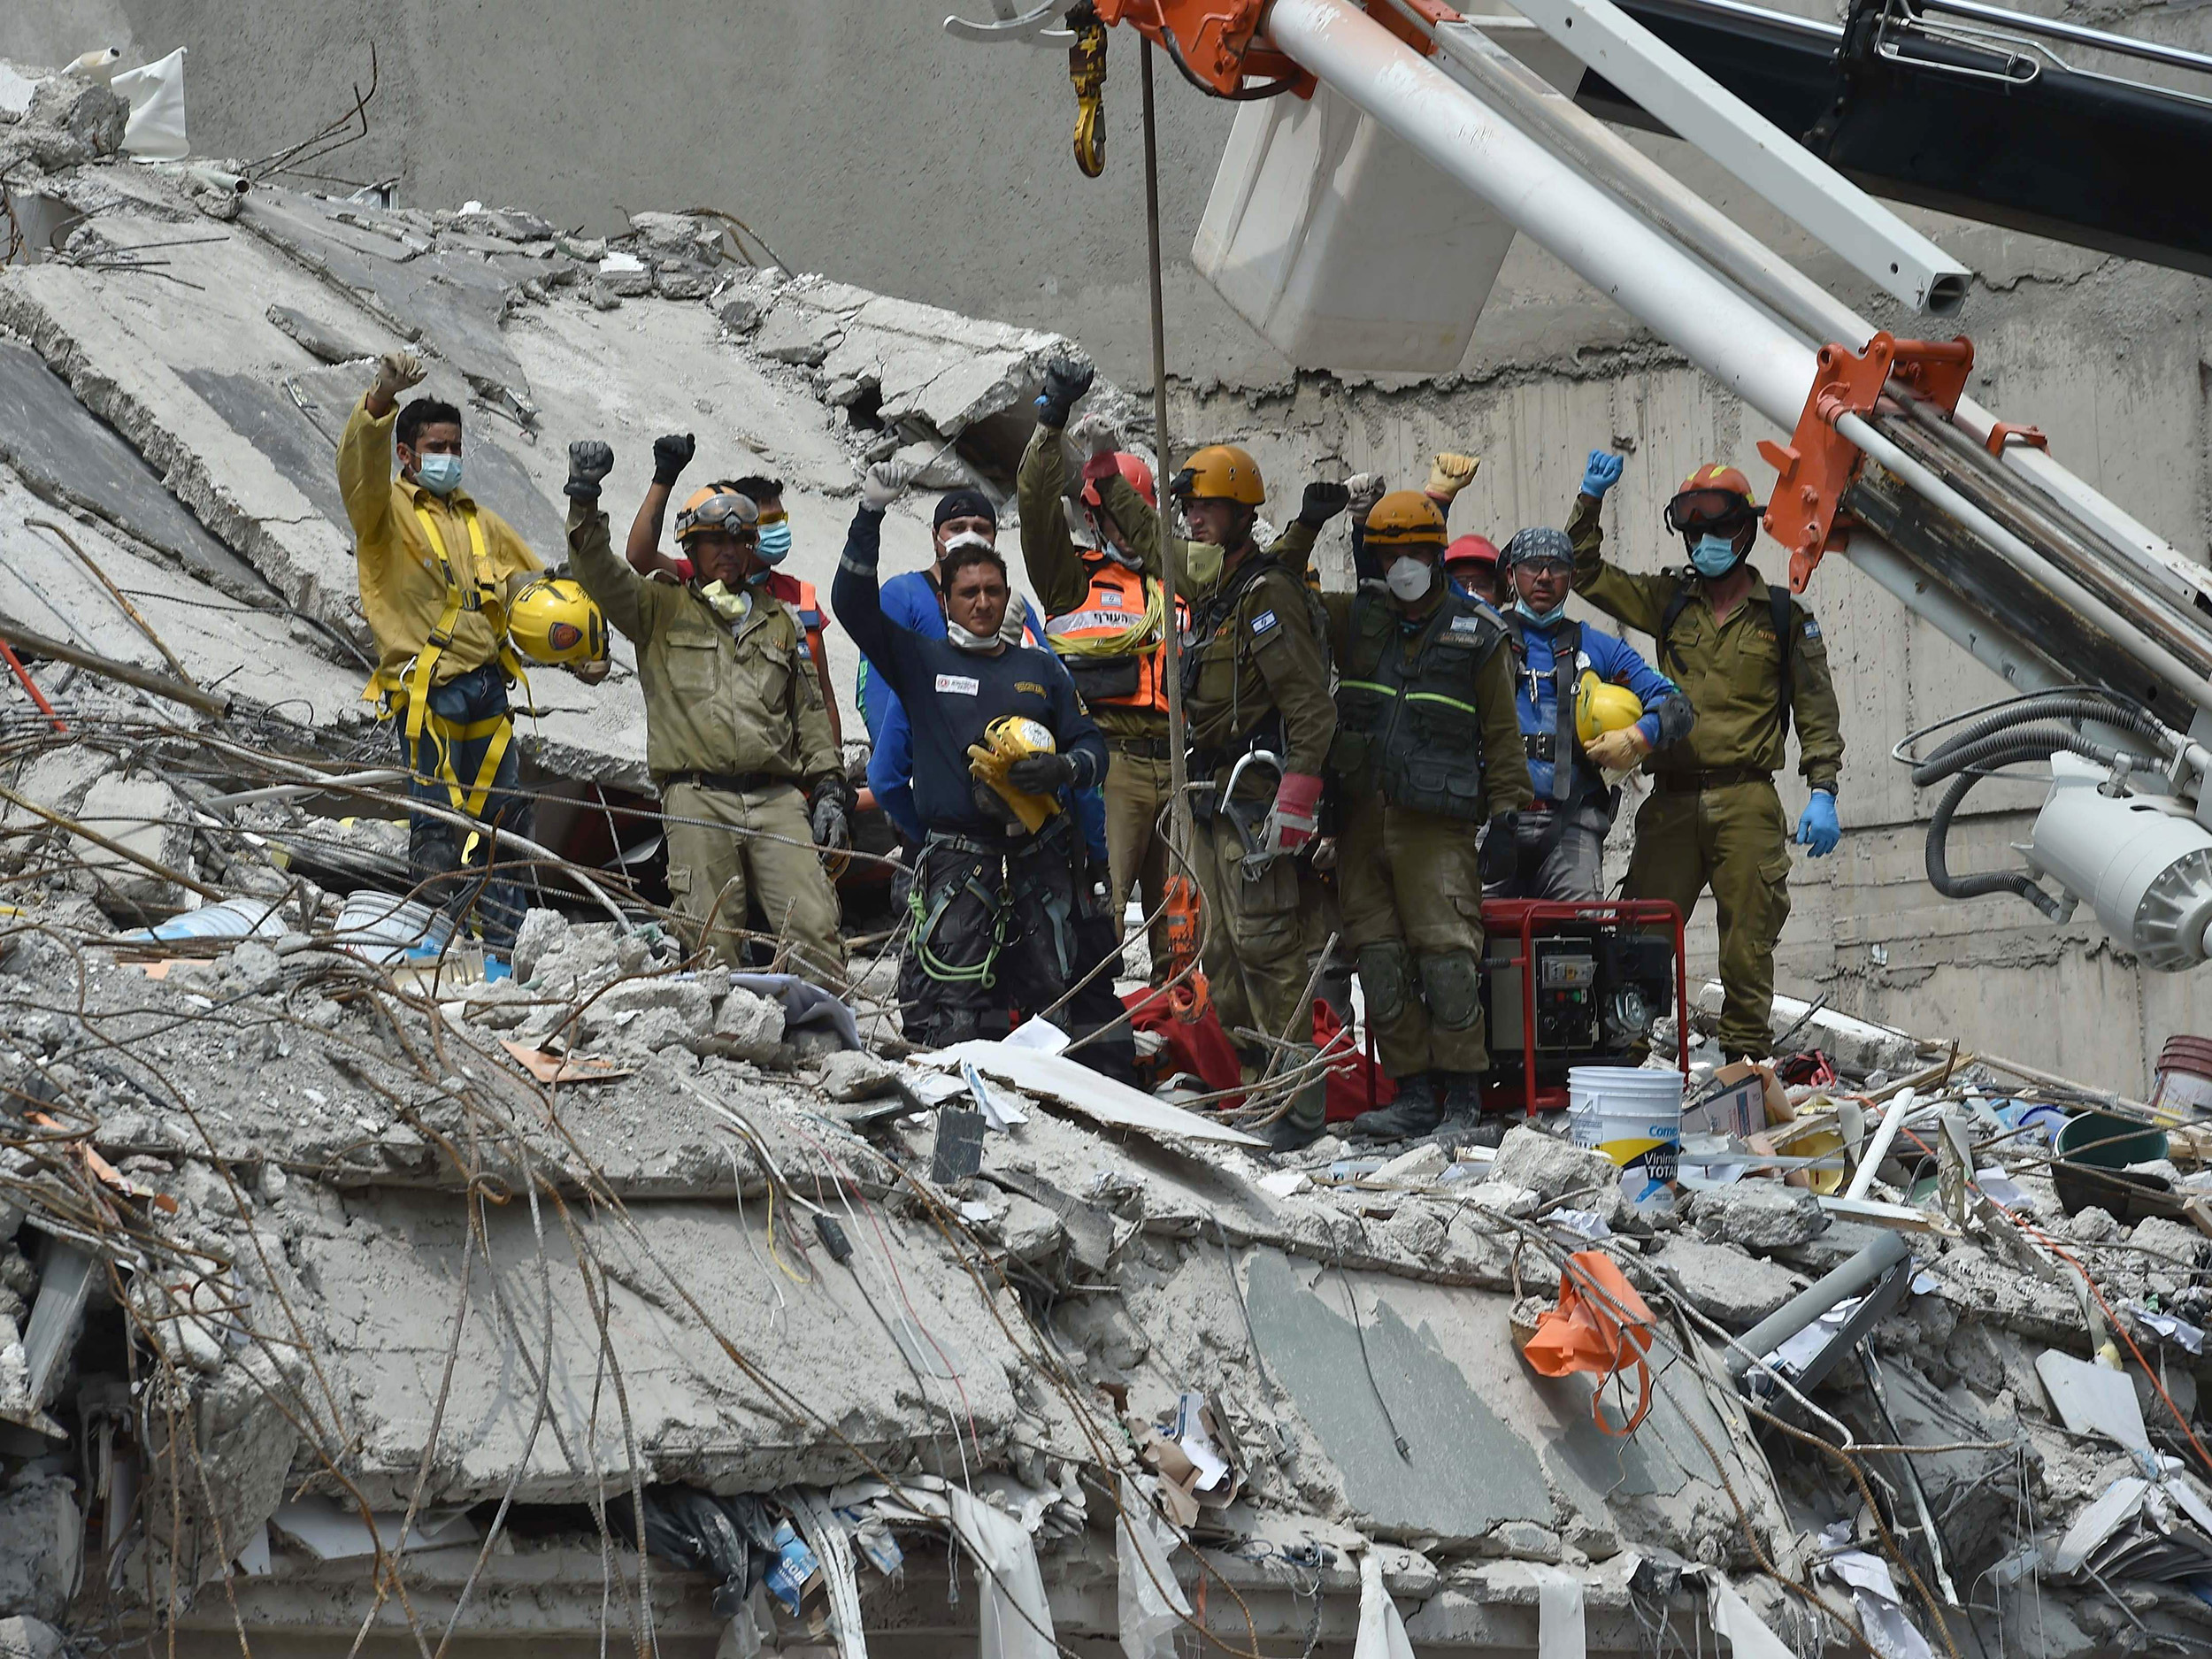 Hope in the Rubble: Survivors Rescued 2 Days After Mexico Quake